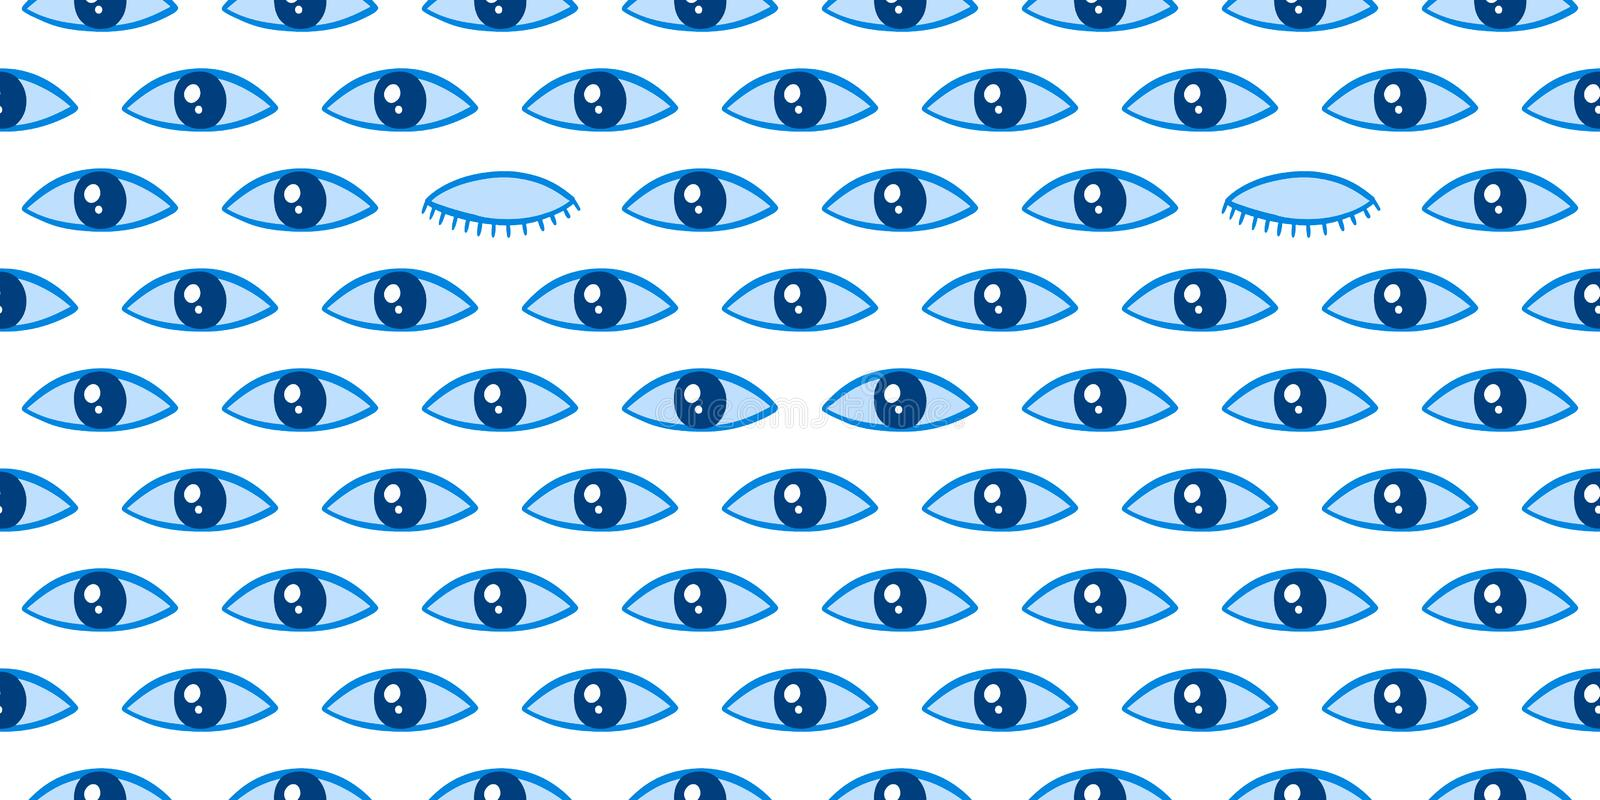 Seamless pattern with eyes magical pattern. Mystical icon hand drawn print. Cartoon style, sign esoteric, inspiration eye. Vector illustration royalty free stock image